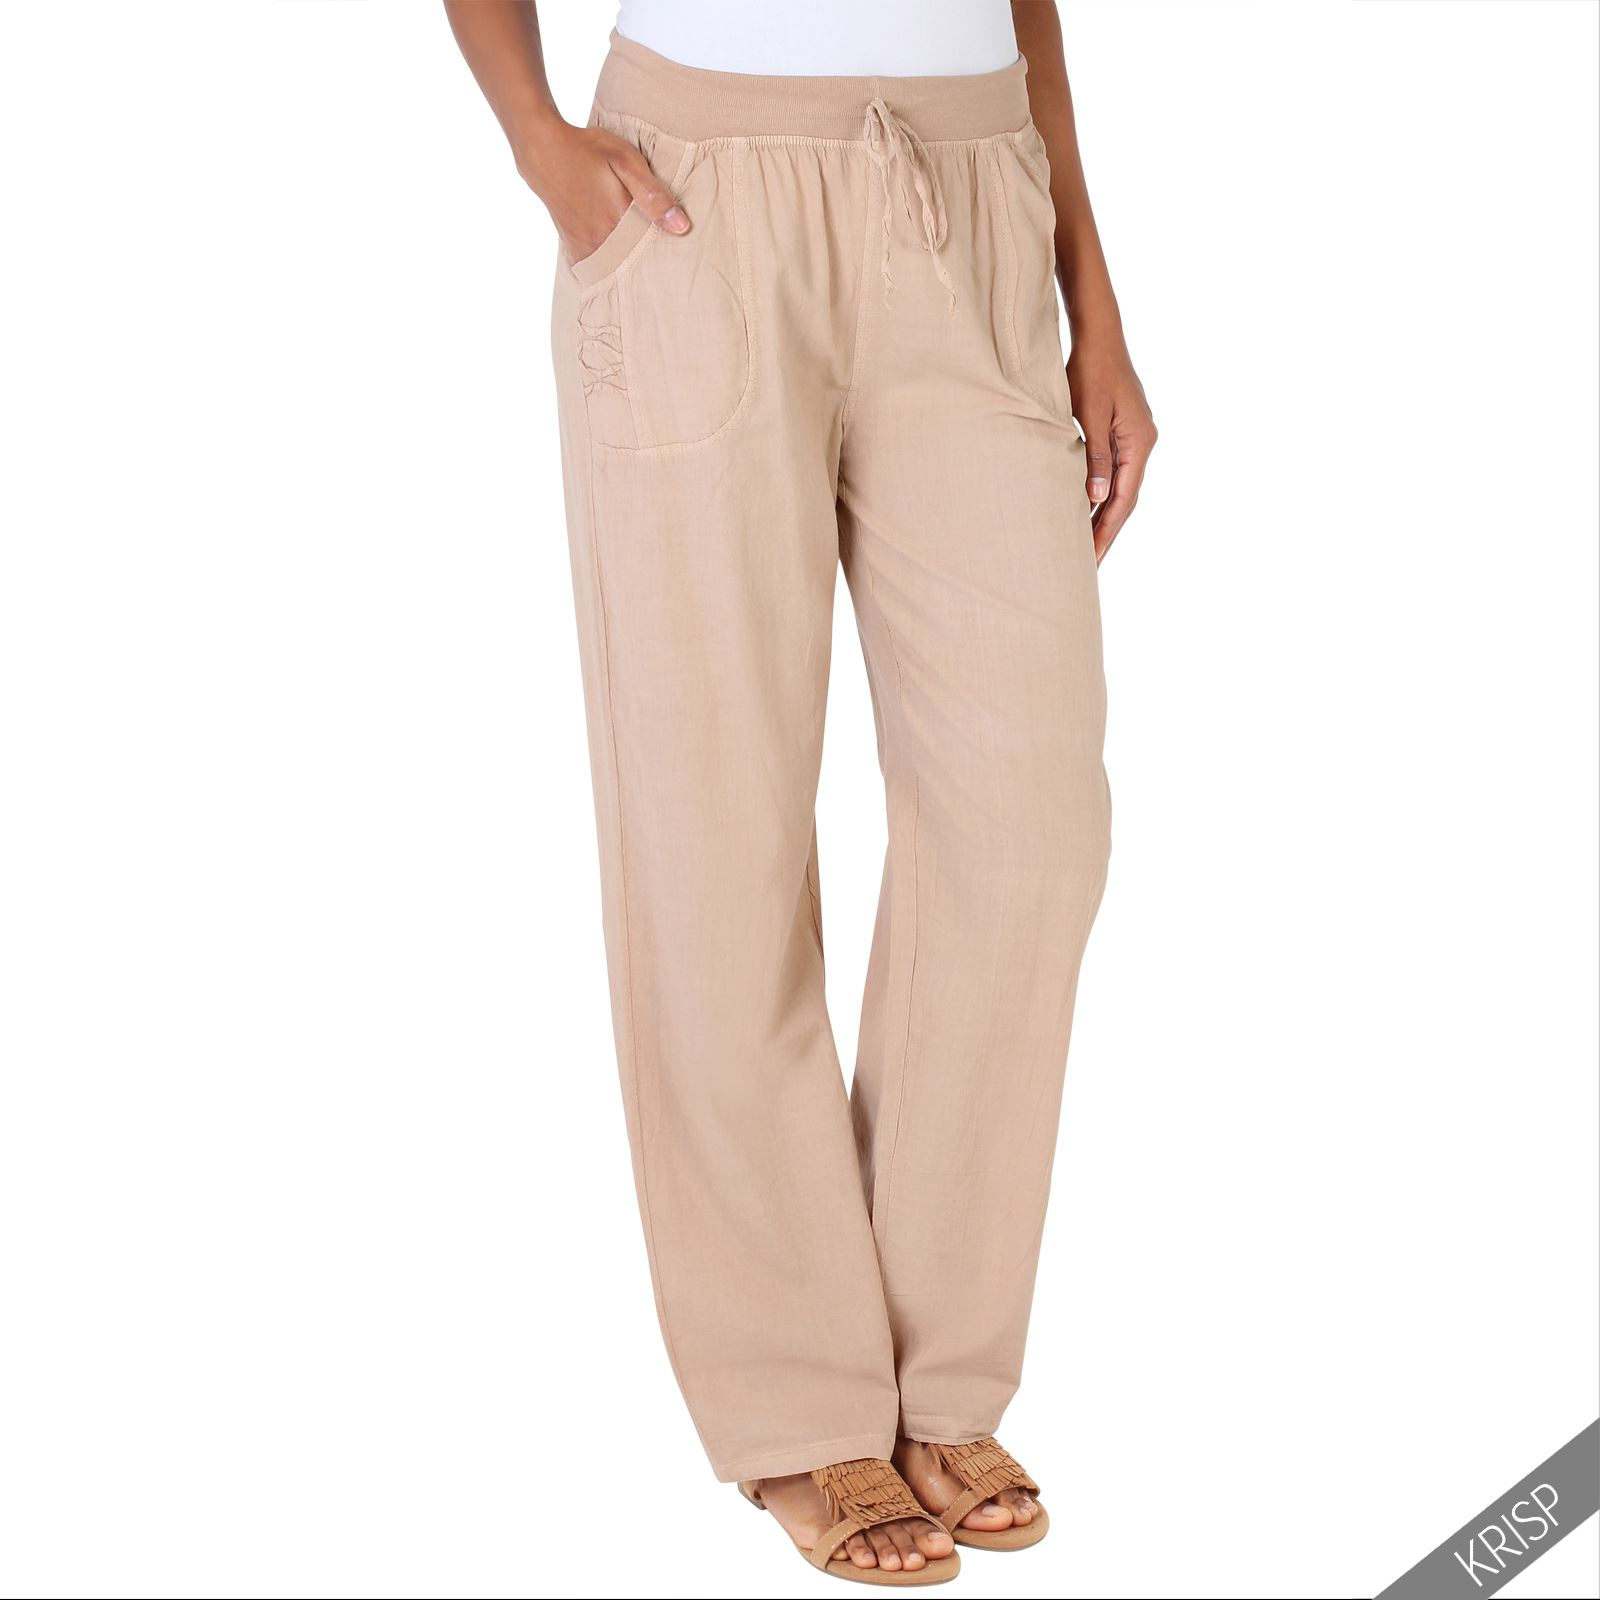 Innovative Digging Deeper Into Linens Psyche, Its Axiomatic That Any Pants That Can Be Called Mens Beach Pants Are Going To Be A Pair Of Pants That Are, By Definition, Casual And We Fully Endorse The